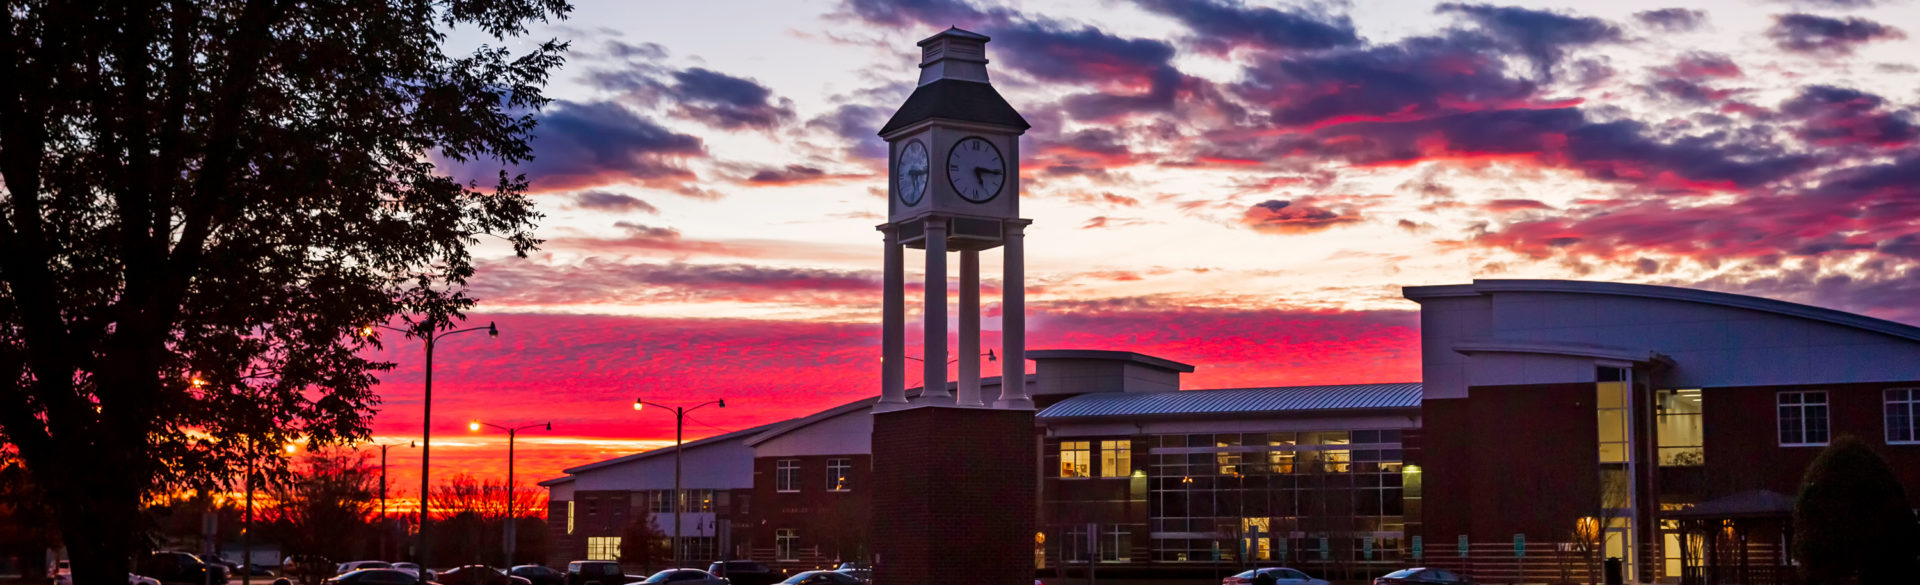 The 35-foot-tall Ed and Joan Warren Clock Tower was purchased by the PCC Foundation through funding the organization received from the Warren Estate.